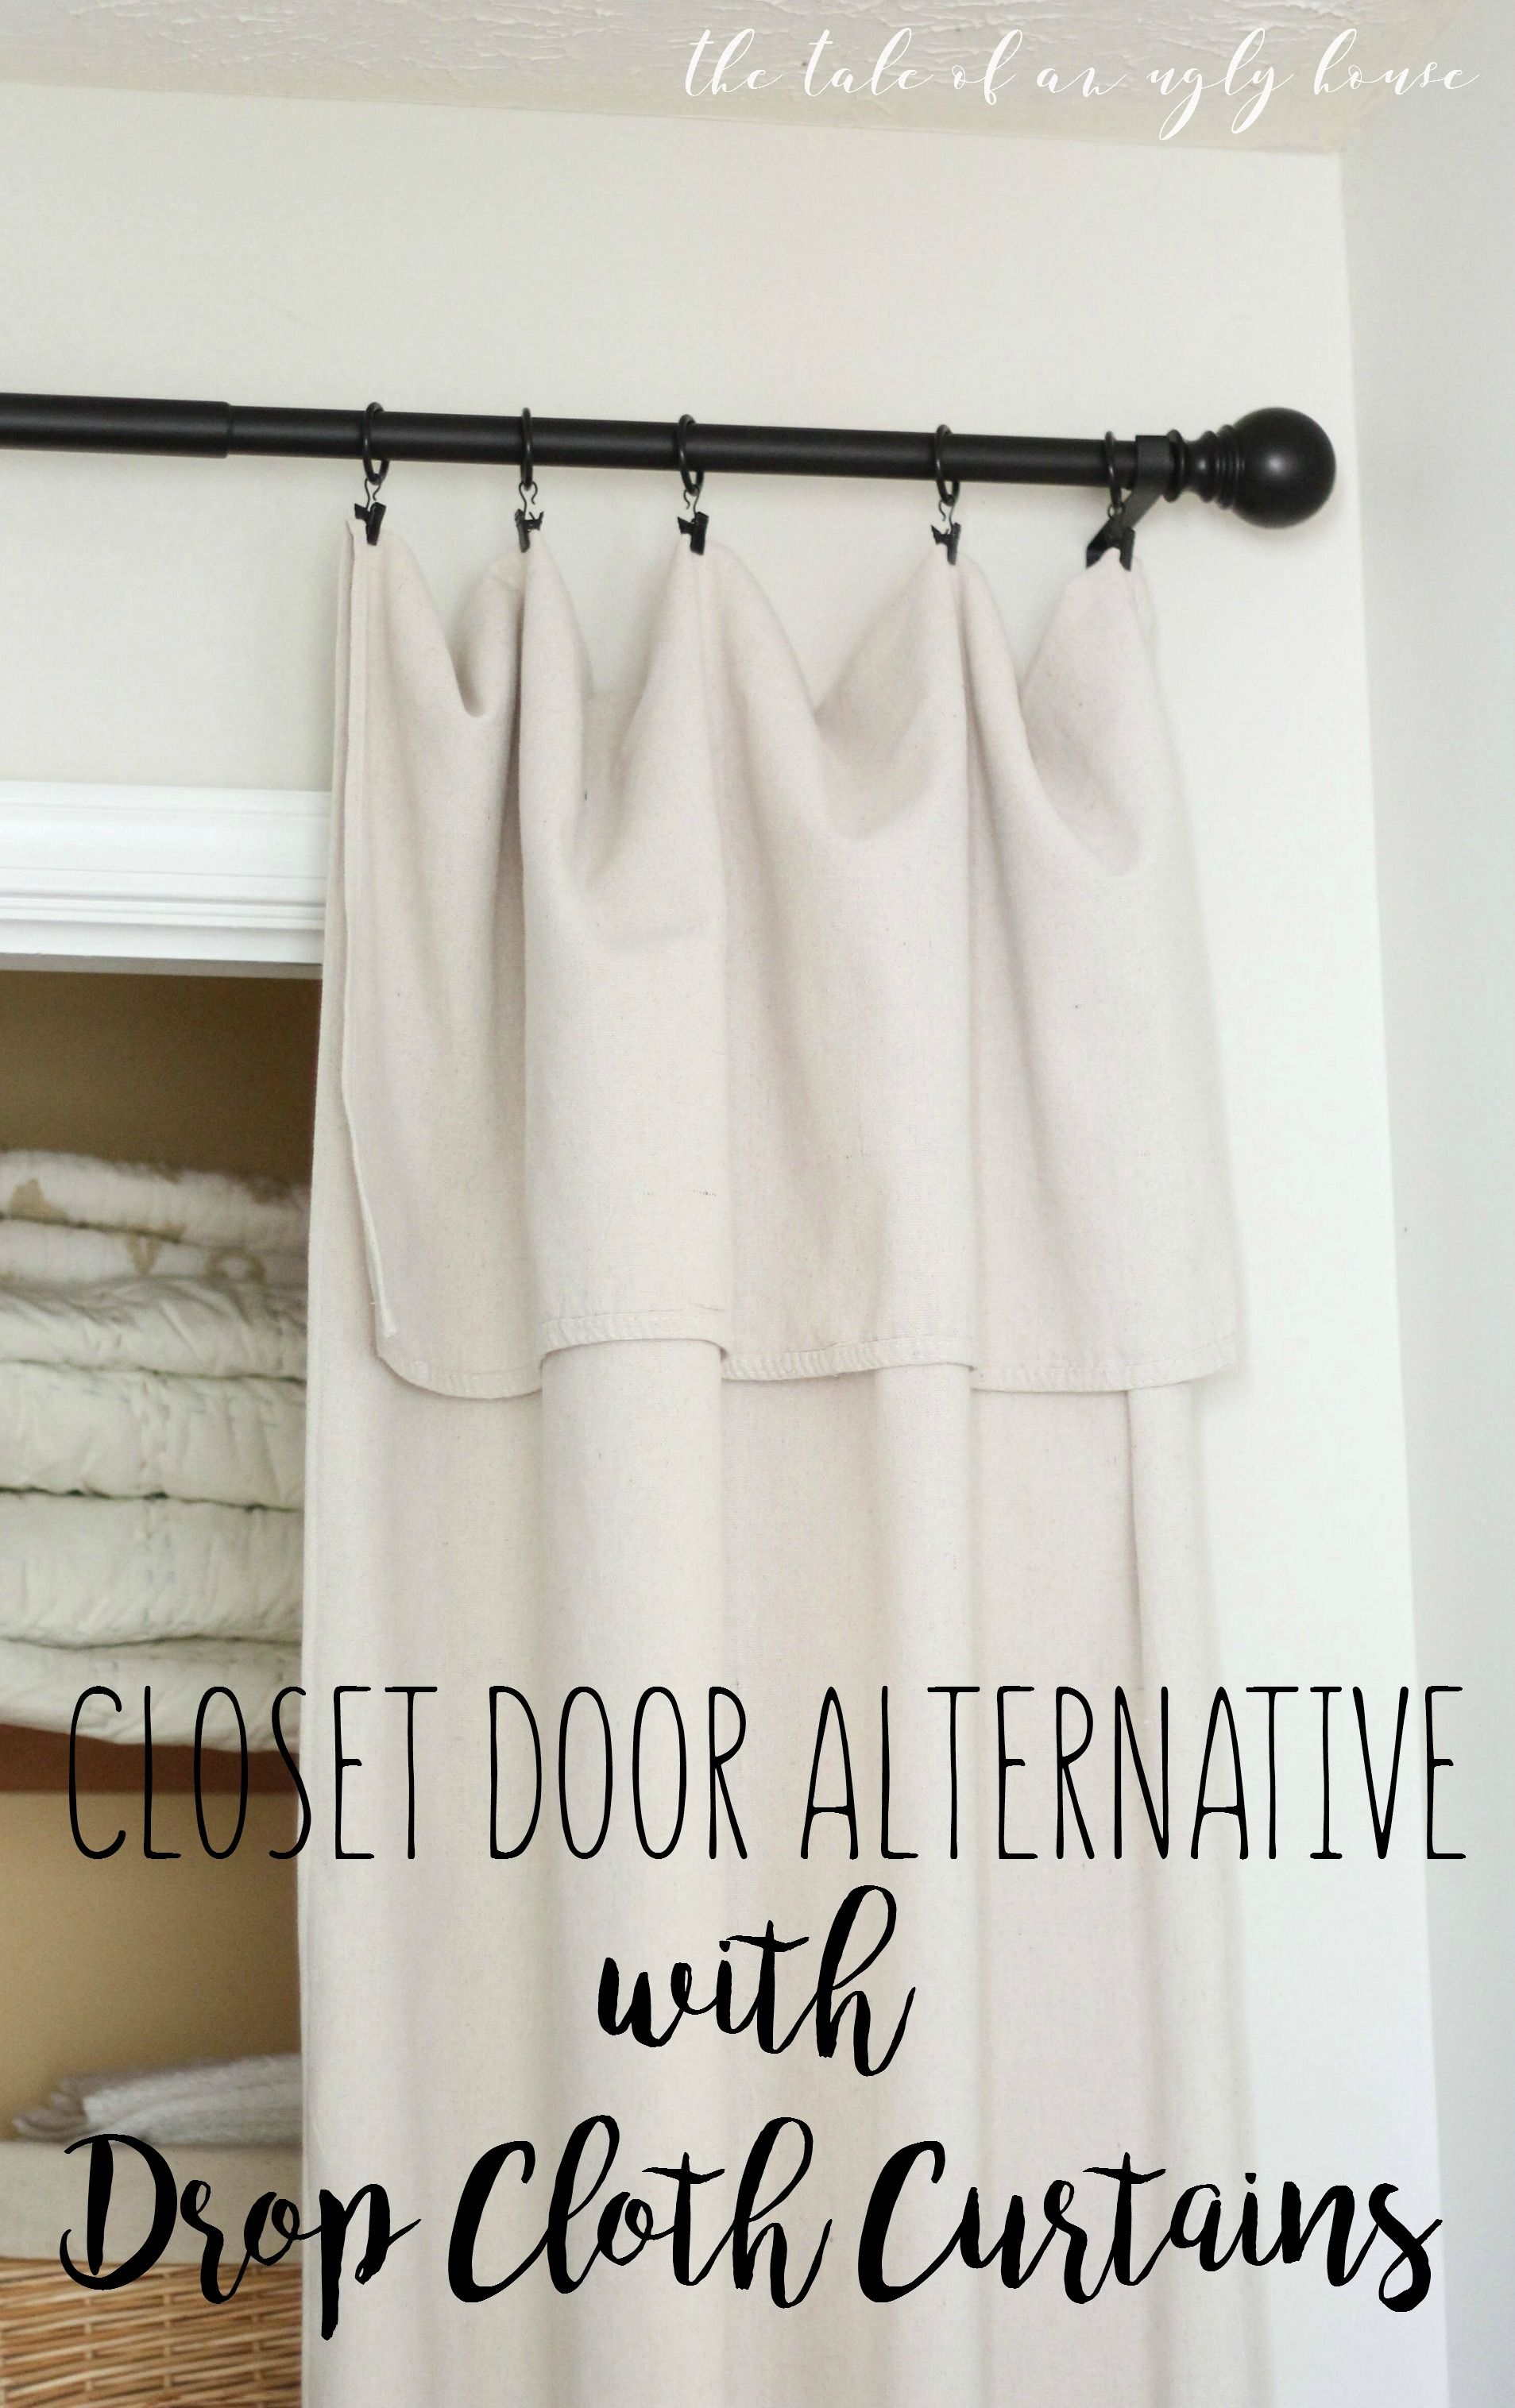 Diy Closet Door Alternative With Drop Cloth Curtains Easy And Super